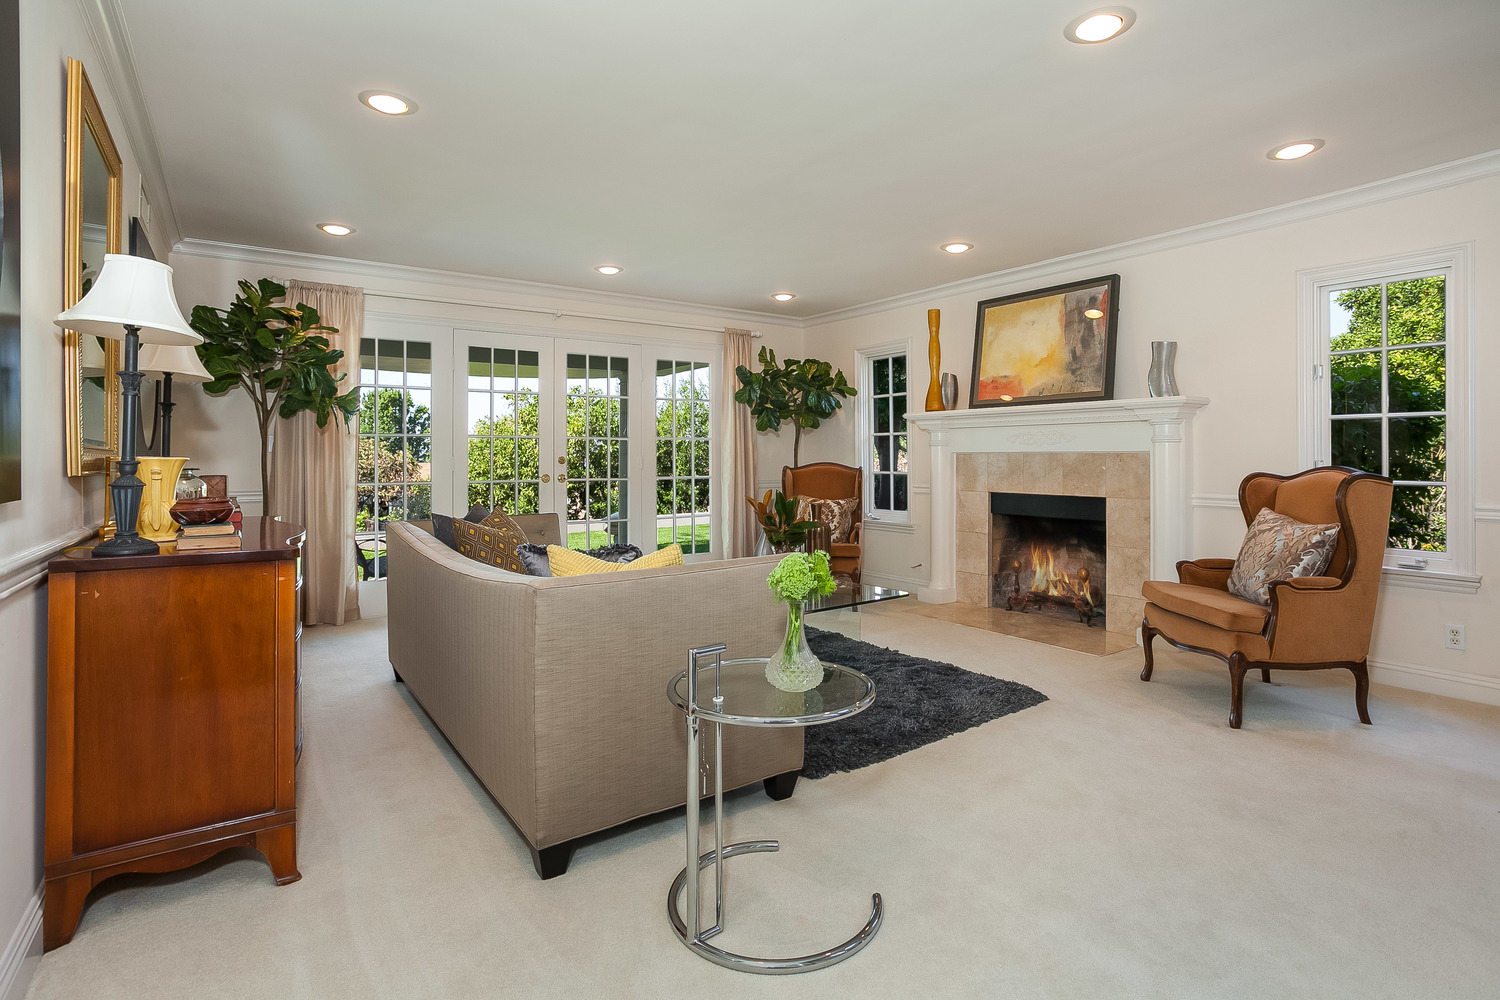 burbank mls photography